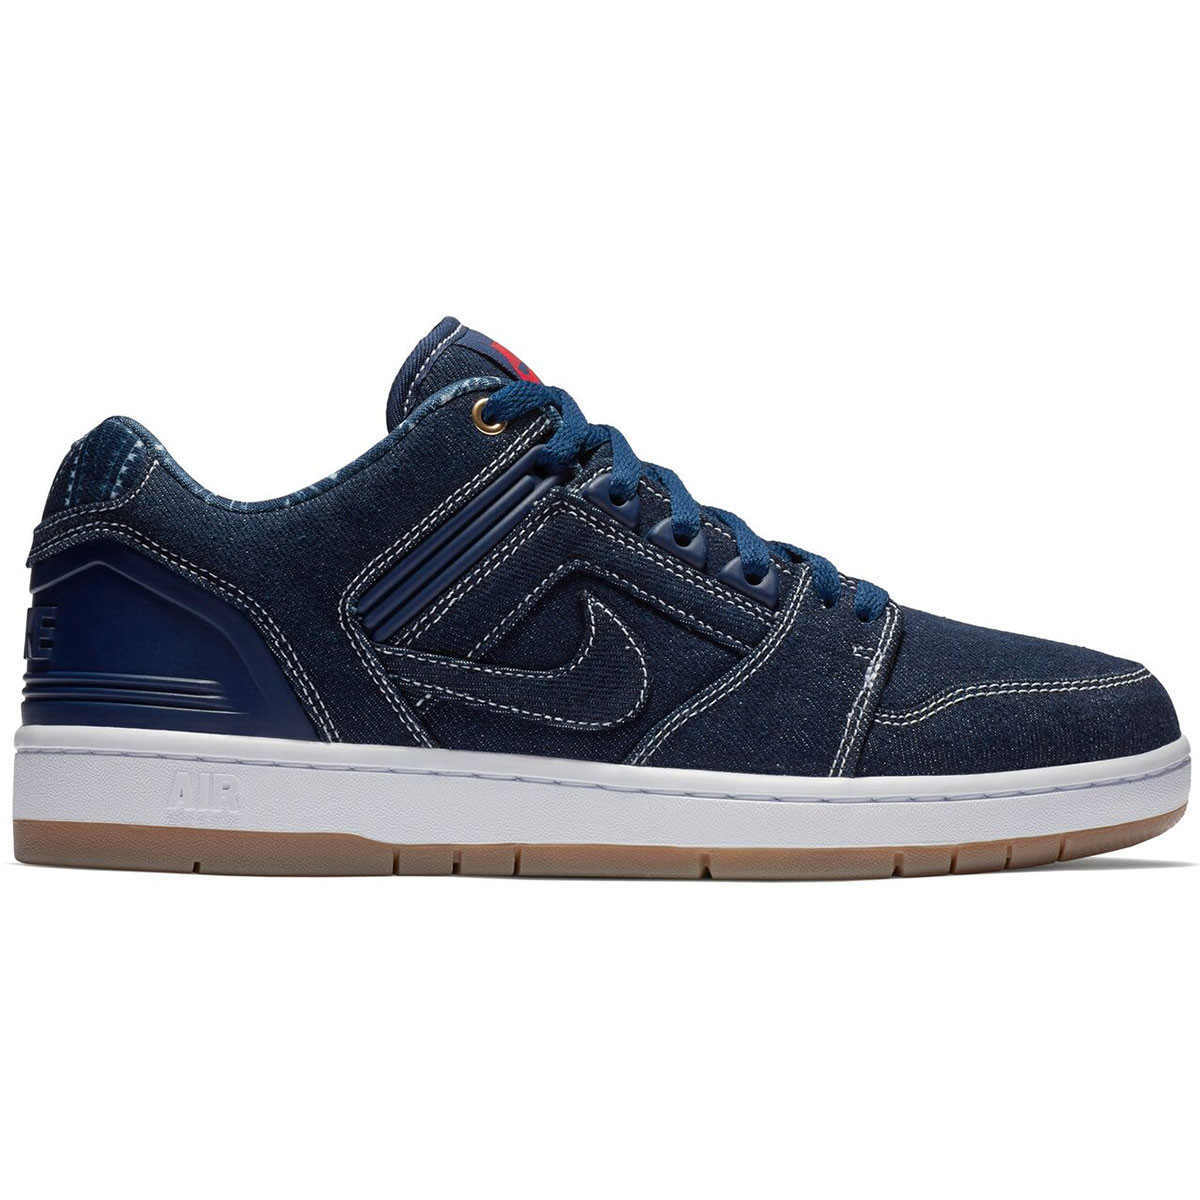 ef010acde2b18 Nike SB Air Force II Low Rivals Shoes - Binary Blue White - 14.0